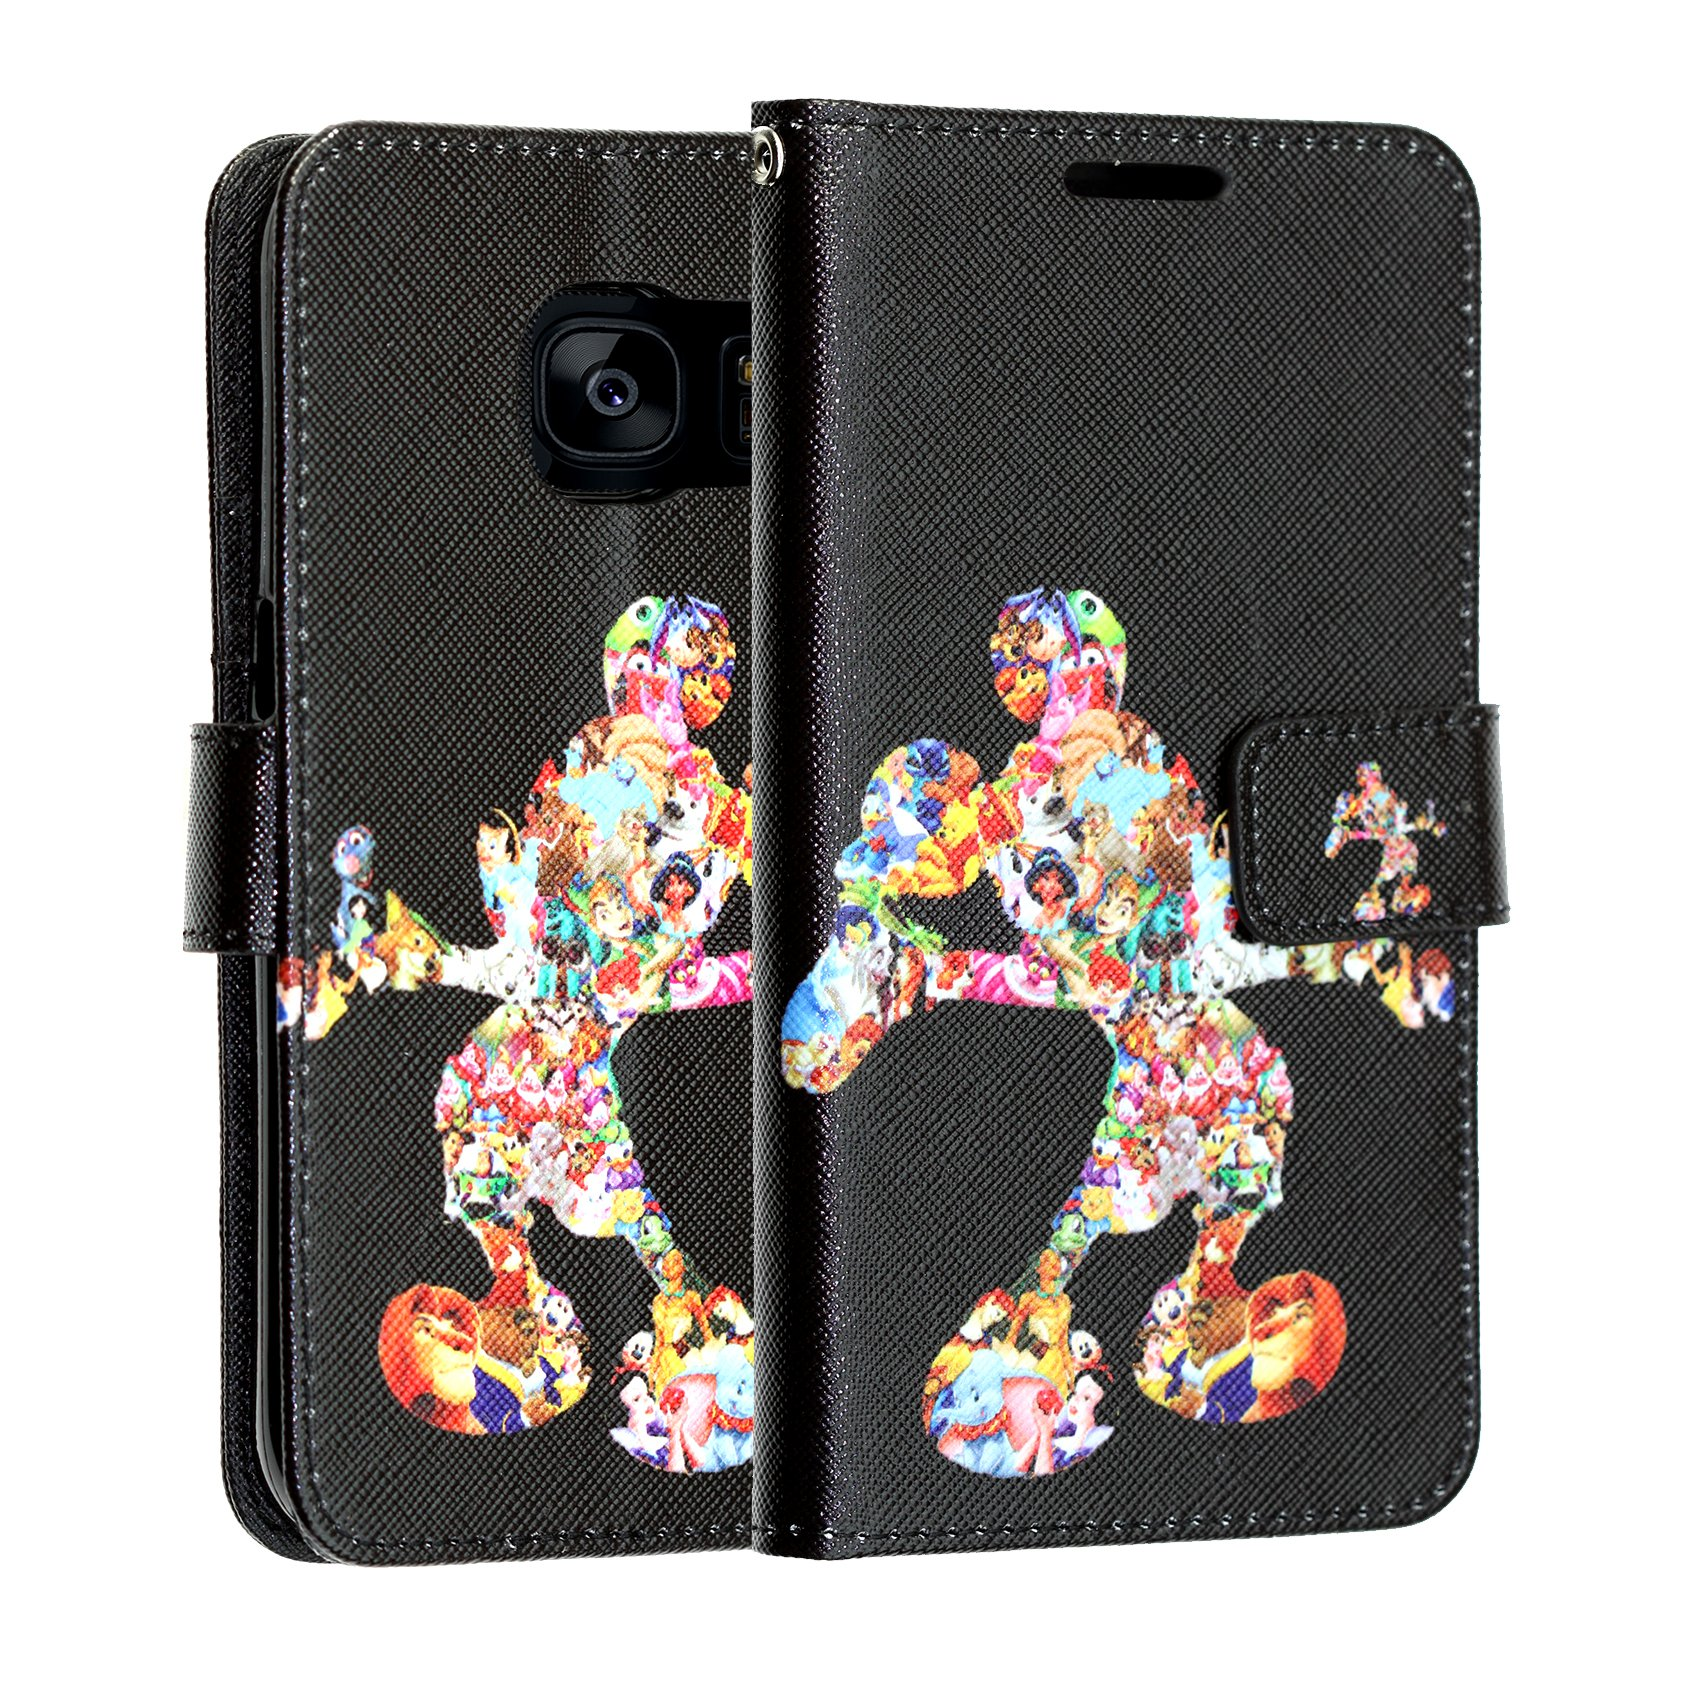 Galaxy S8 PLUS Wallet Case, DURARMOR Vintage Black Mickey Mouse Leather Folio Wallet Case with ID Credit Card Cash Slots Flip Stand Cover Case for Galaxy S8 Plus, Mickey Mouse